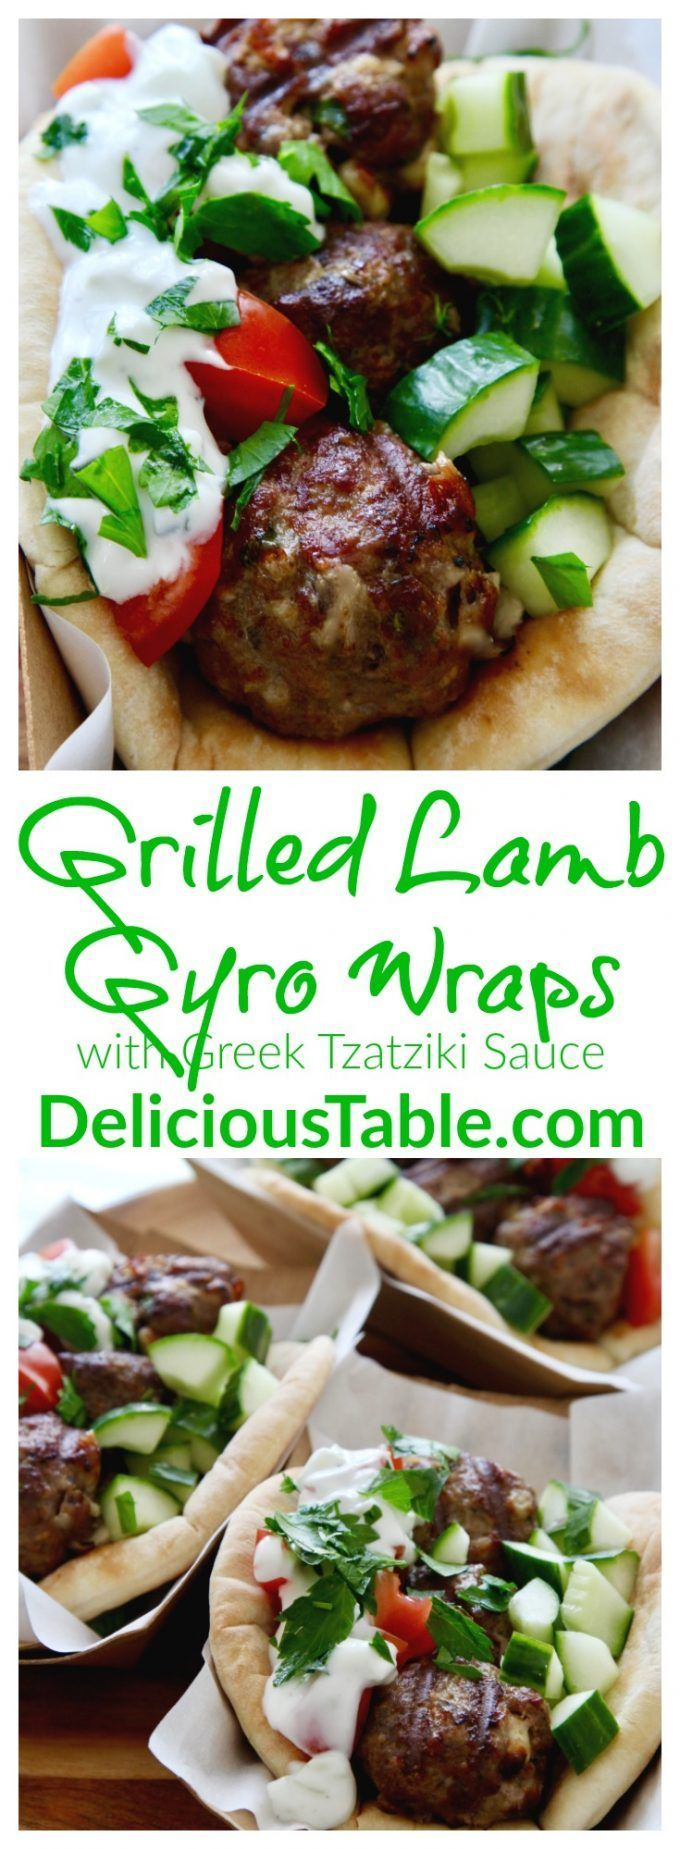 Grilled Lamb Gyro Wraps with Greek Tzatziki Sauce are made in minutes on the grill, place on a pita wrap with cool veggies and tzatziki sauce! {sponsored}